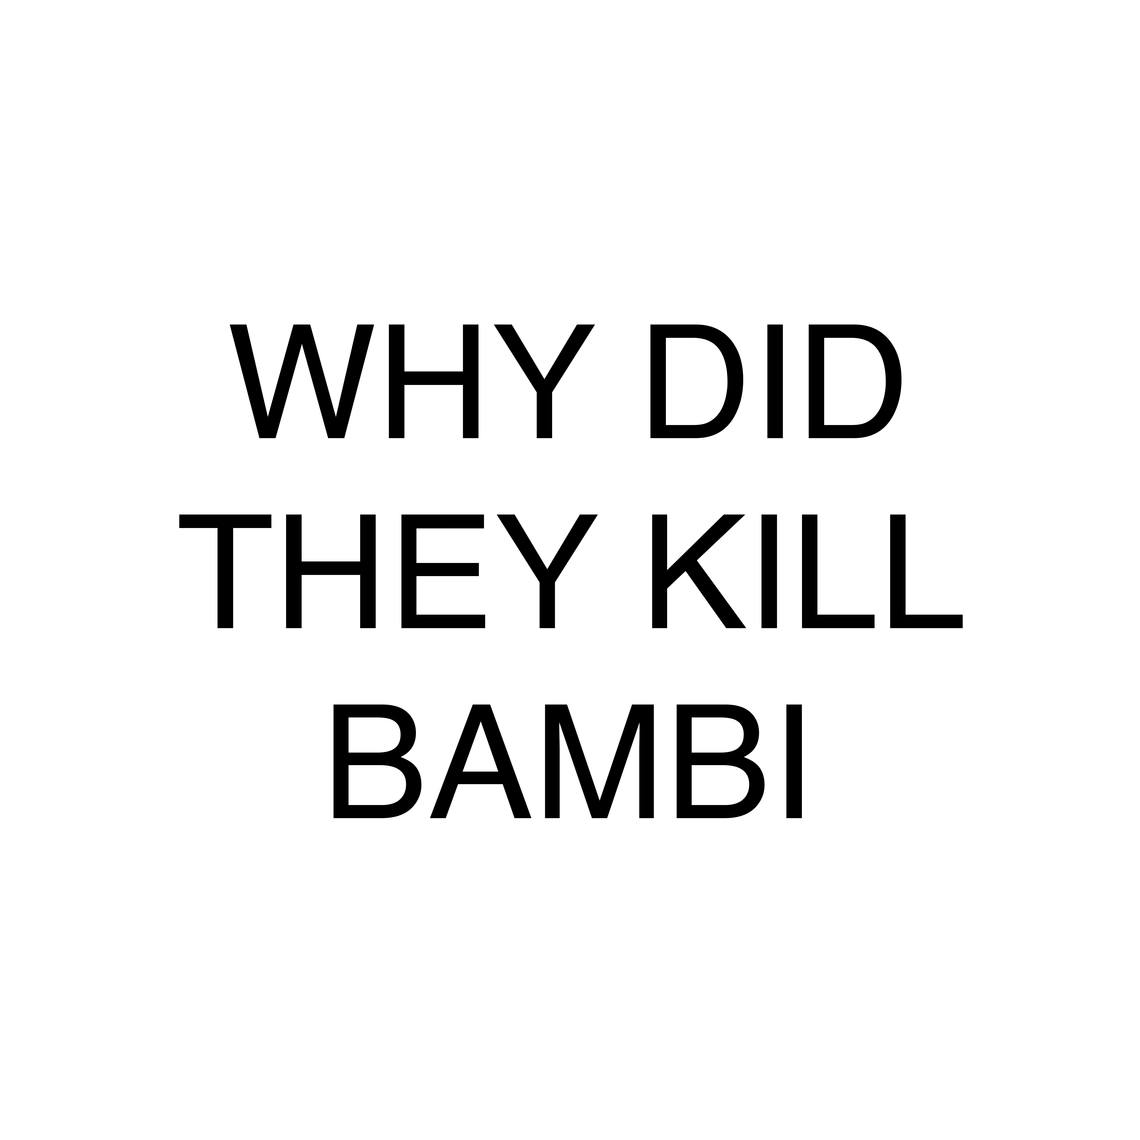 - WHY DID THEY KILL BAMBI